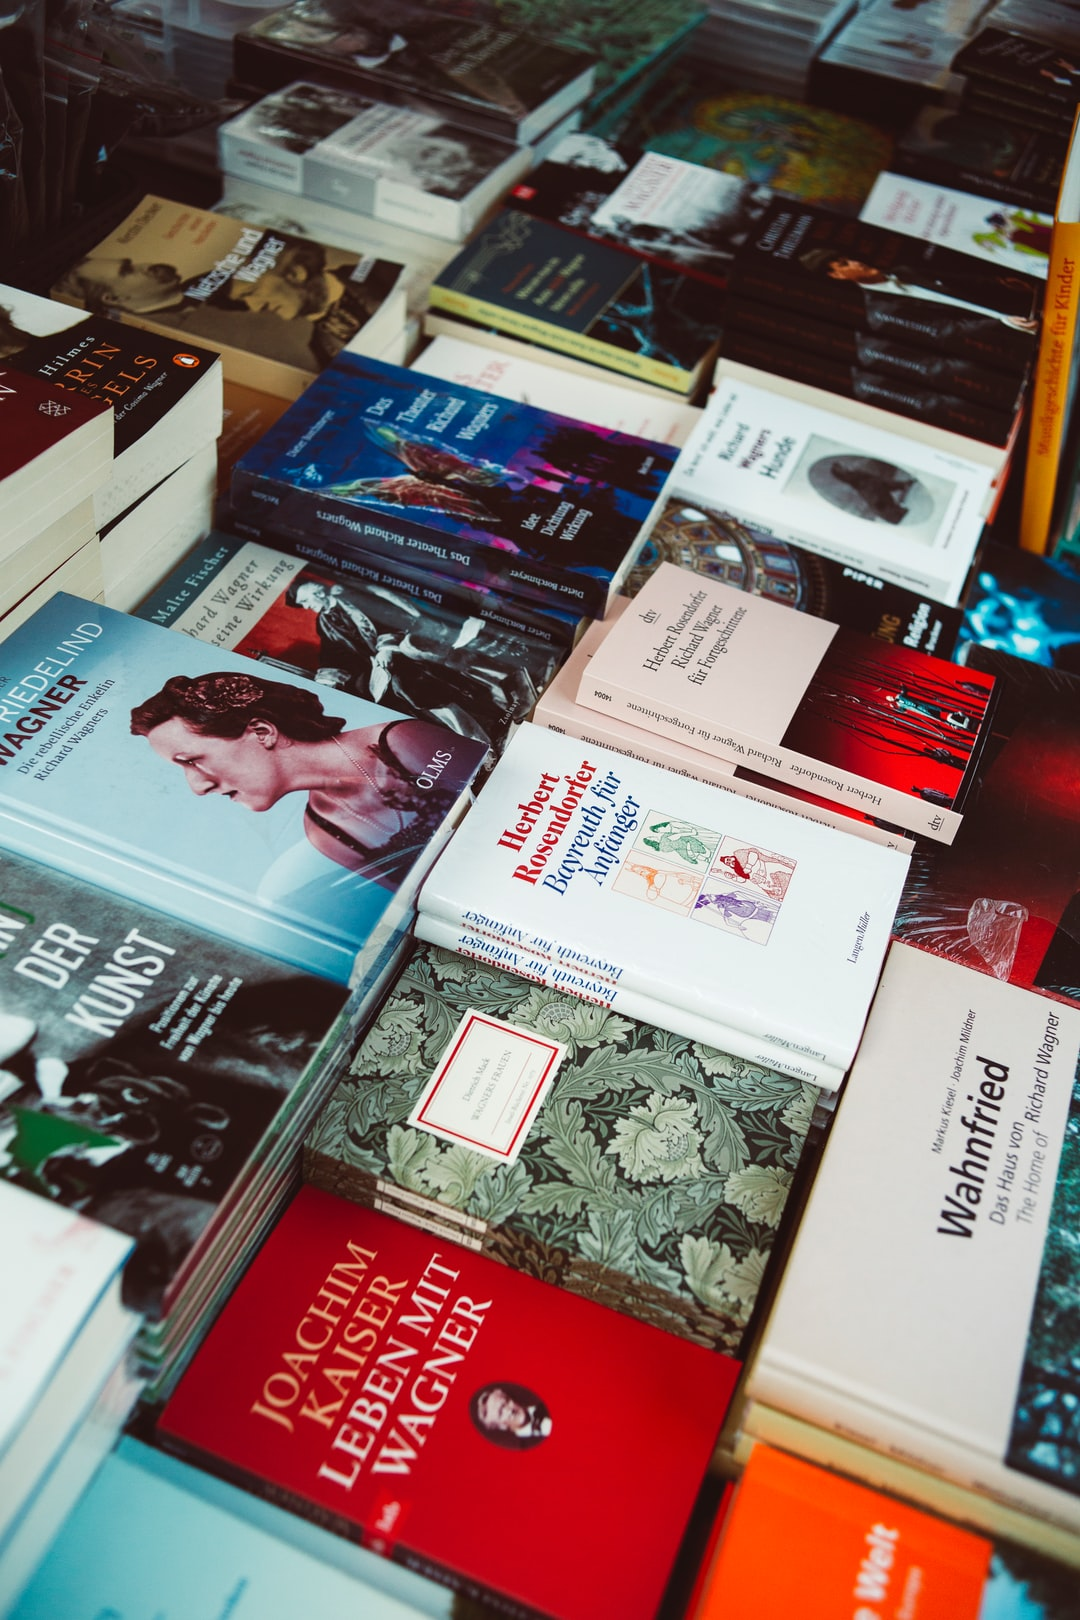 Richard Wagner book & souvenir store at legendary opera house in Bayreuth. Made with Canon 5d Mark III and vintage analog lens Leica Summicron-R 2.0 35mm.